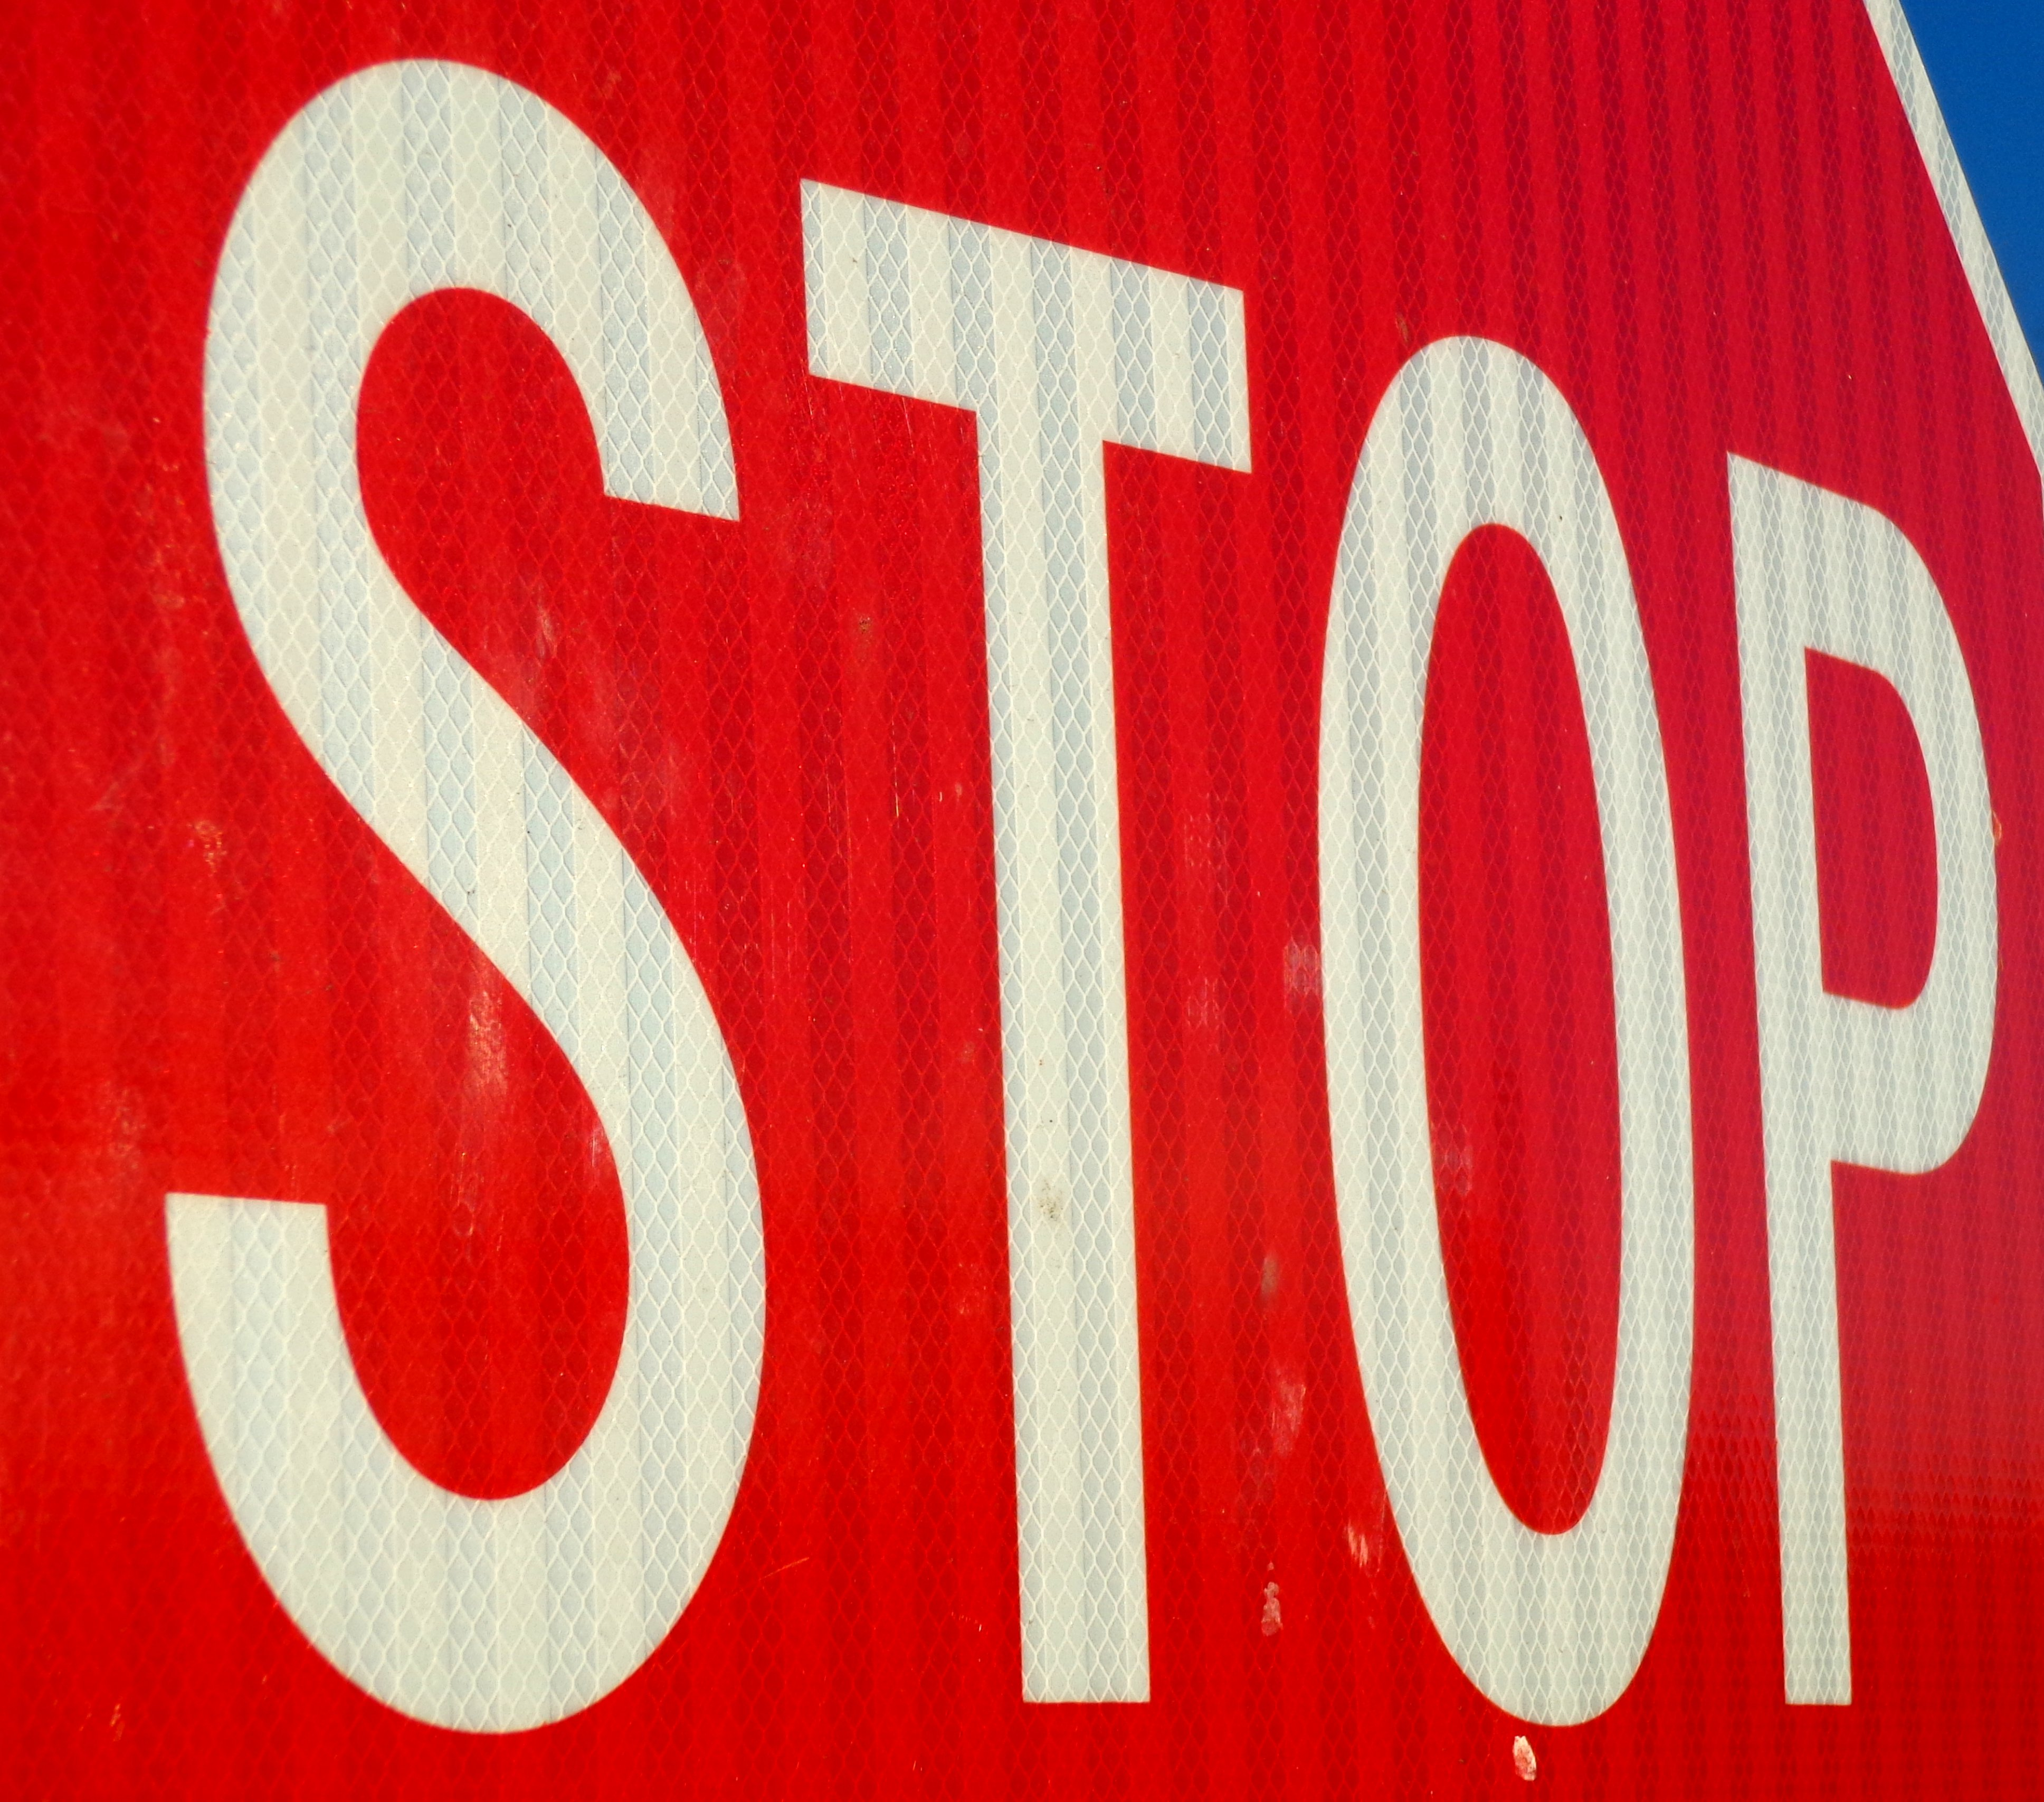 Stop sign high resolution. Close up photo of